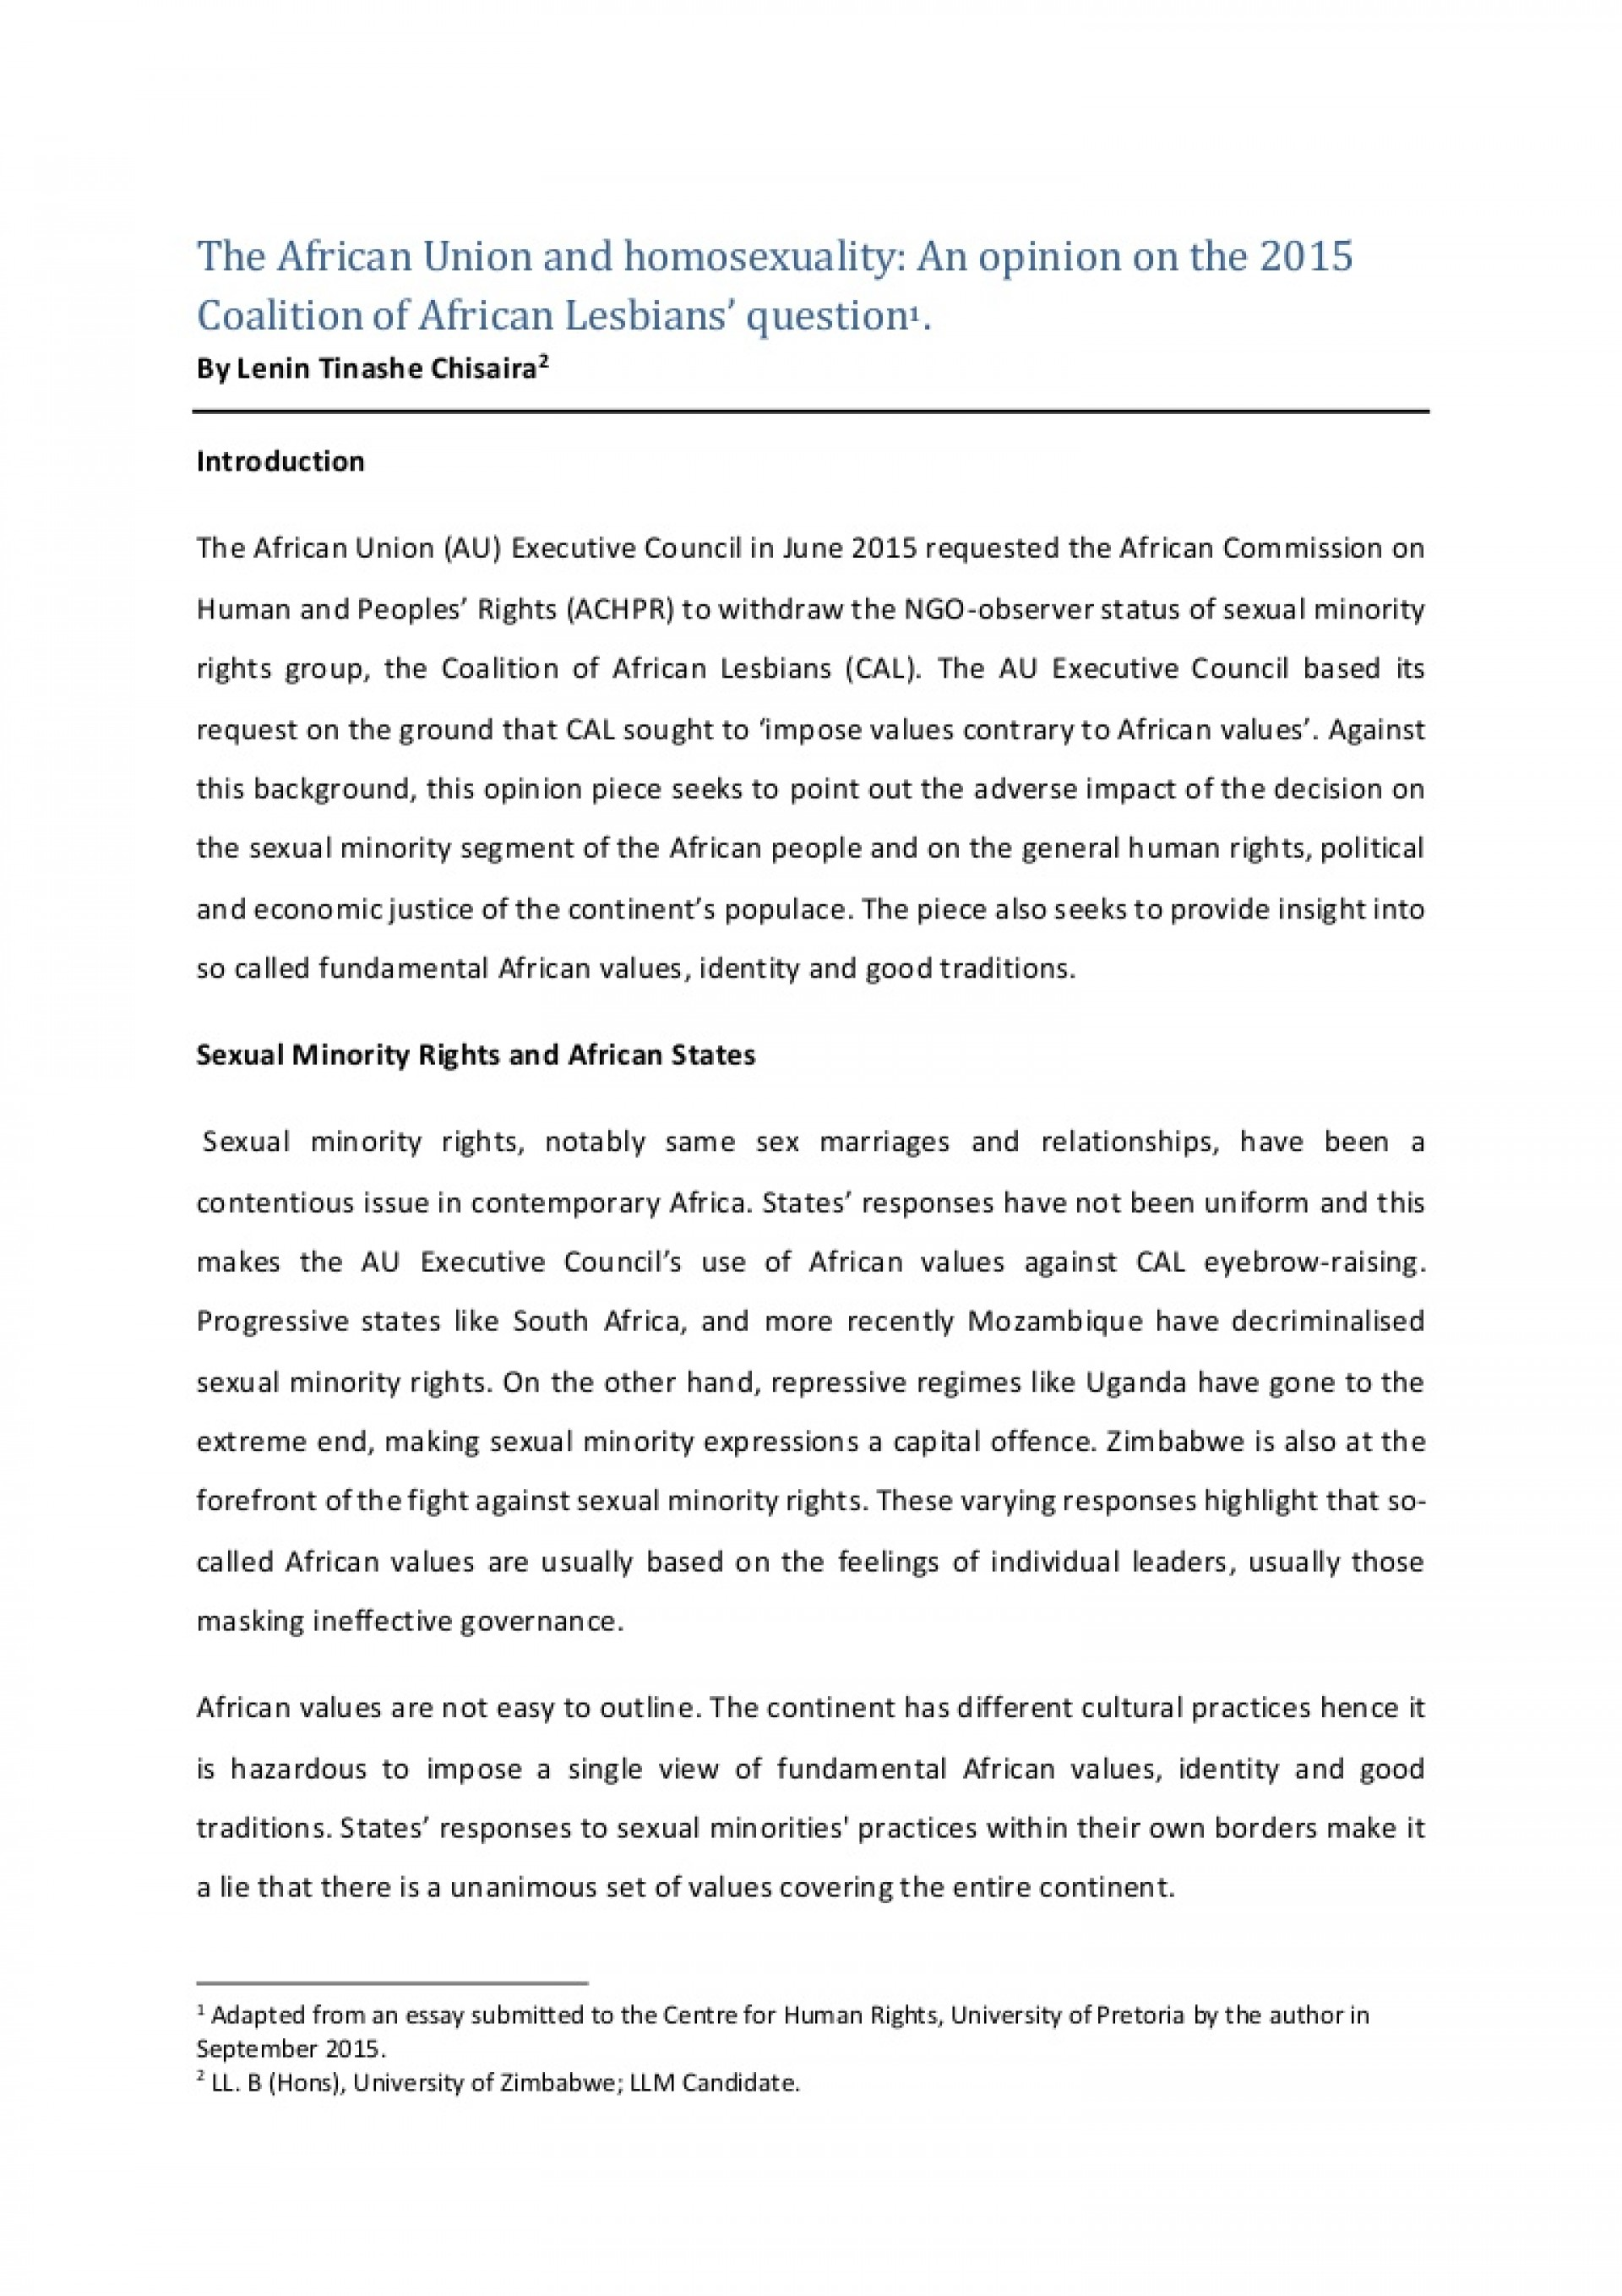 002 Theafricanunionandhomosexuality Anopiniononthecoalitionofafricanlesbiansquestion Thumbnail Essay Example Unbelievable Coalition Upload Help Prompt 1 1920